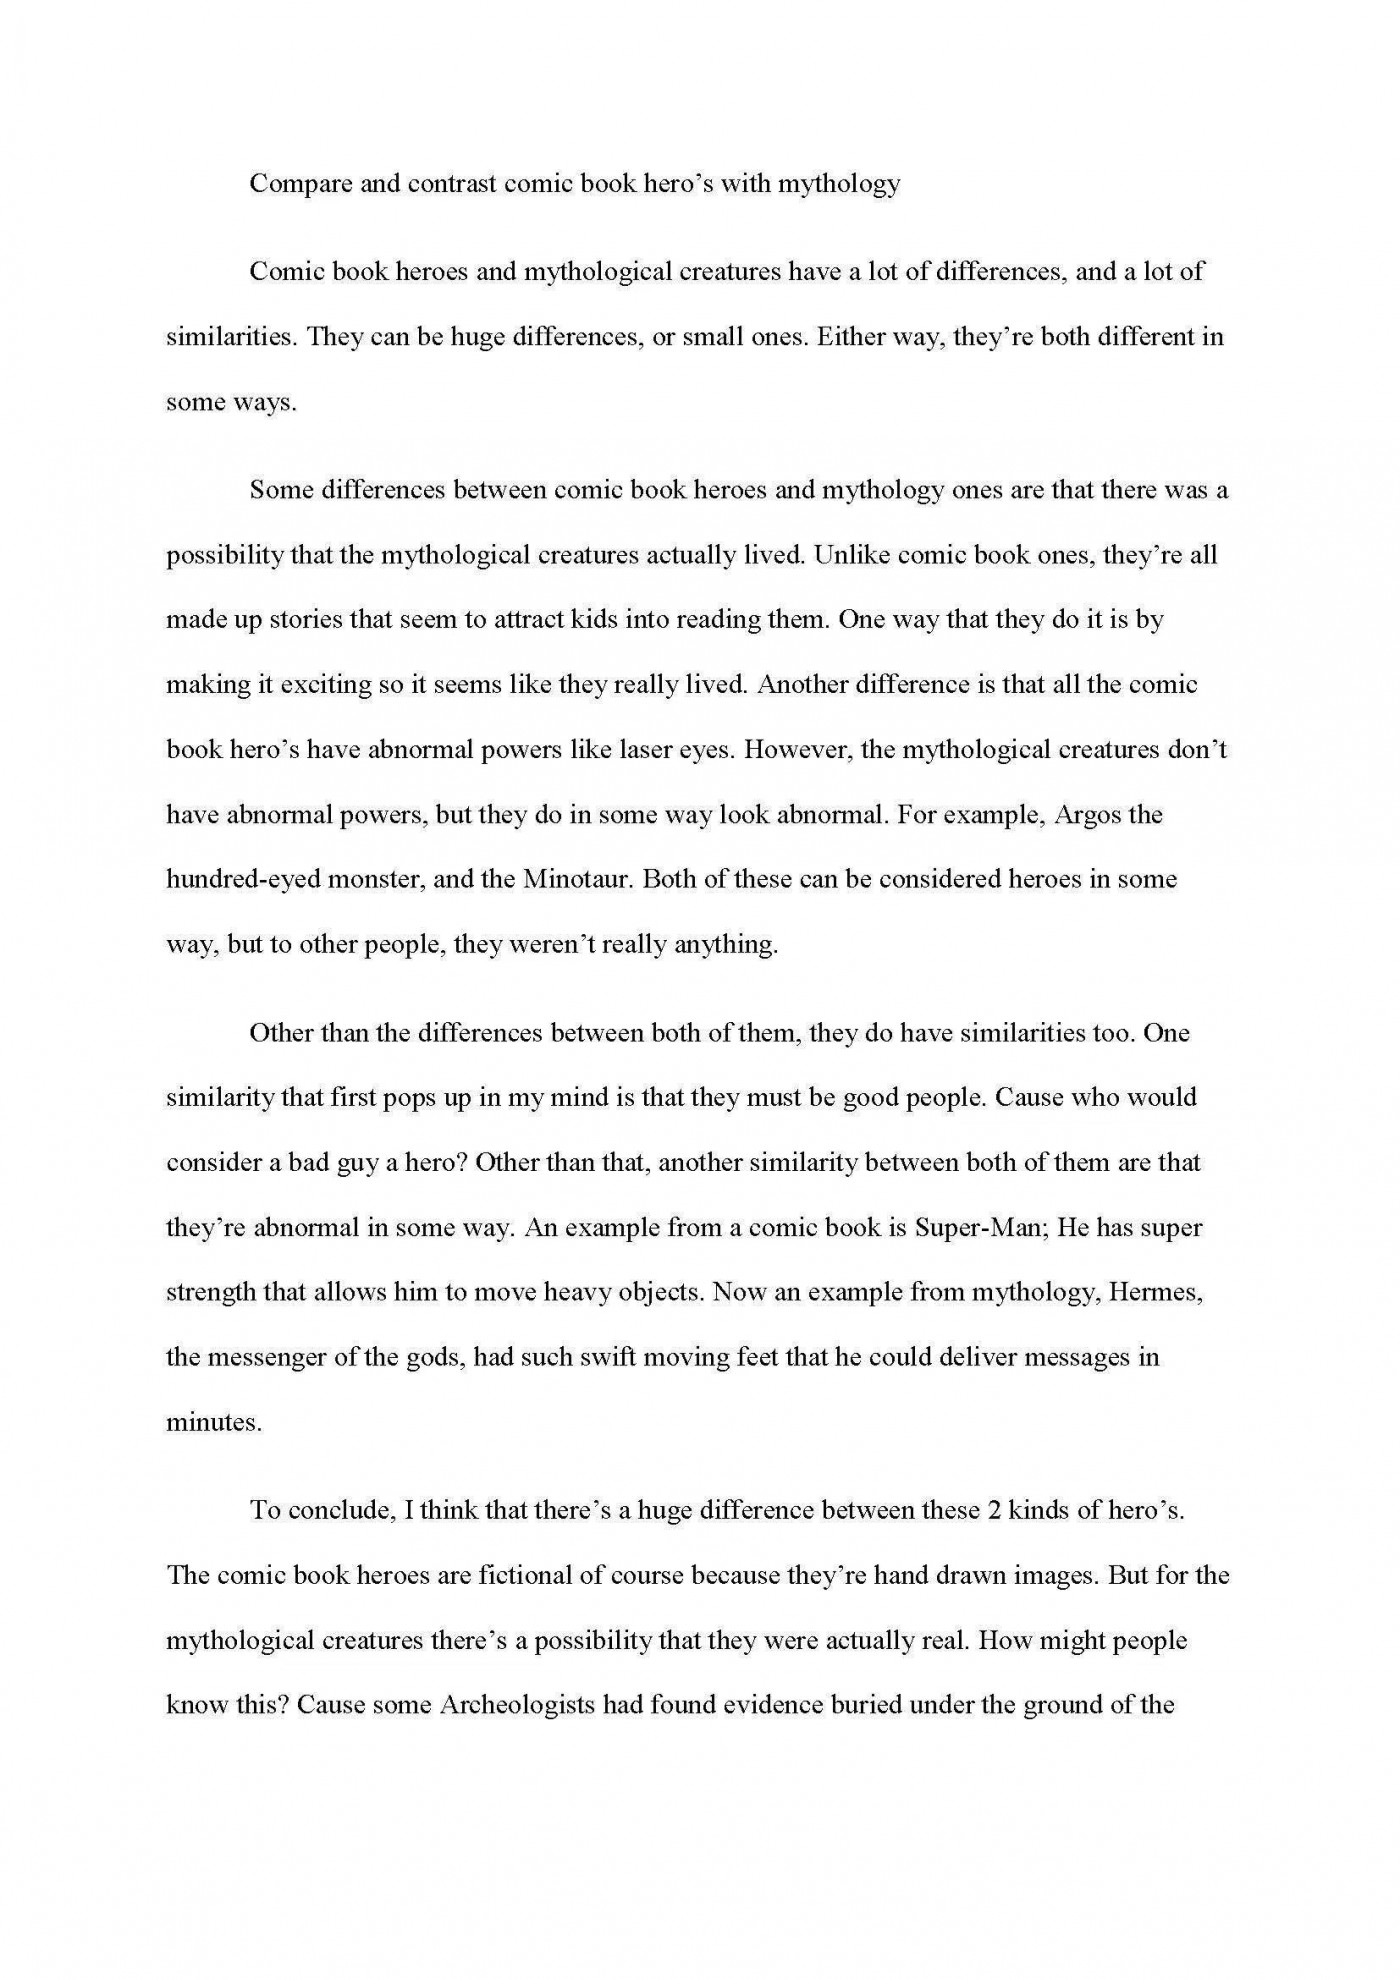 006 Excellent Compare And Contrast Essay Example College  For Topic Free Comparison1400